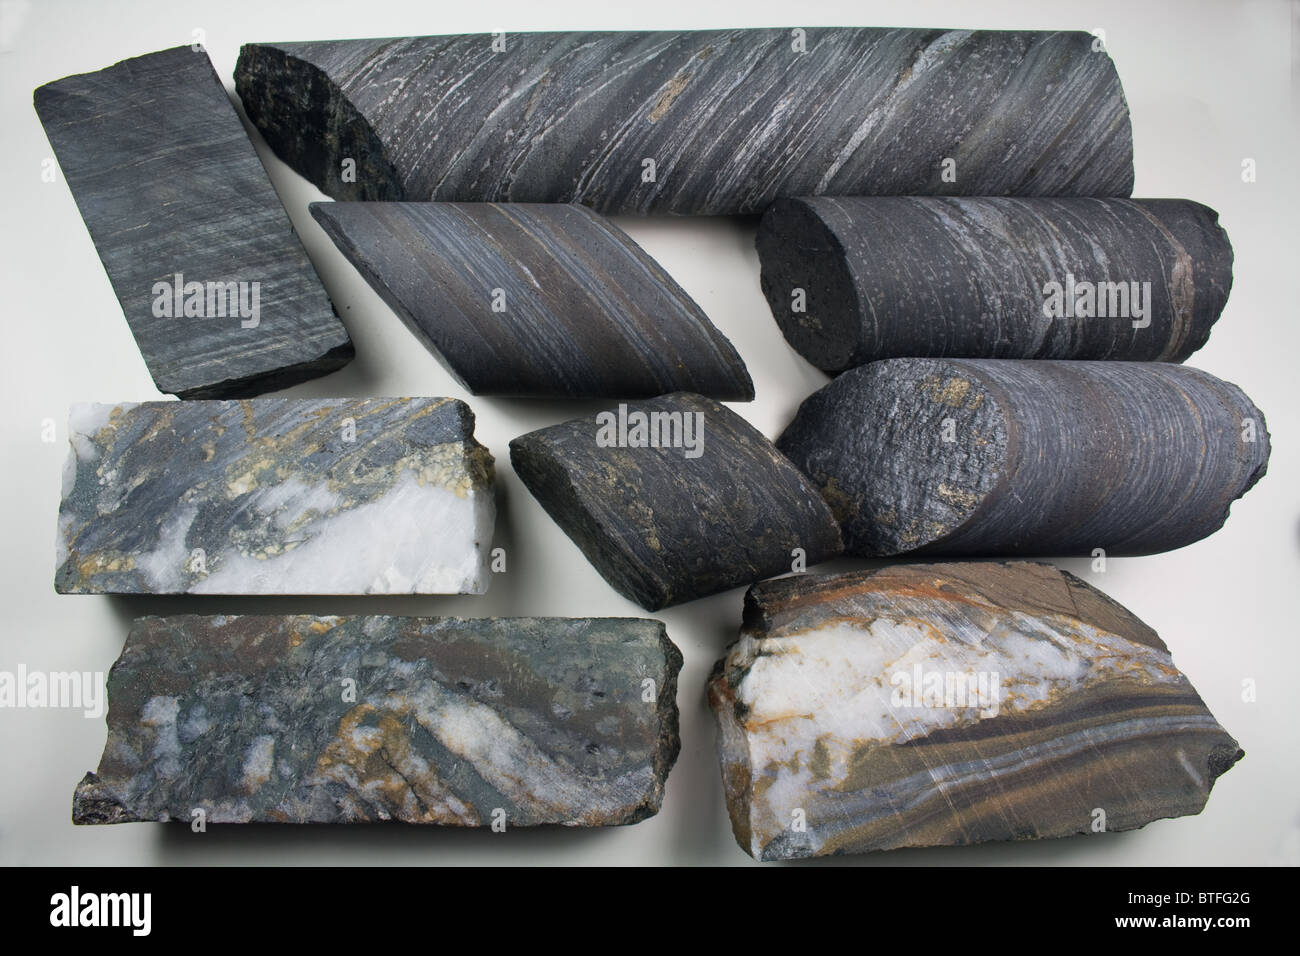 Homestake Gold Mine - Diamond Drill Core Samples - Lead, South Dakota - Stock Image